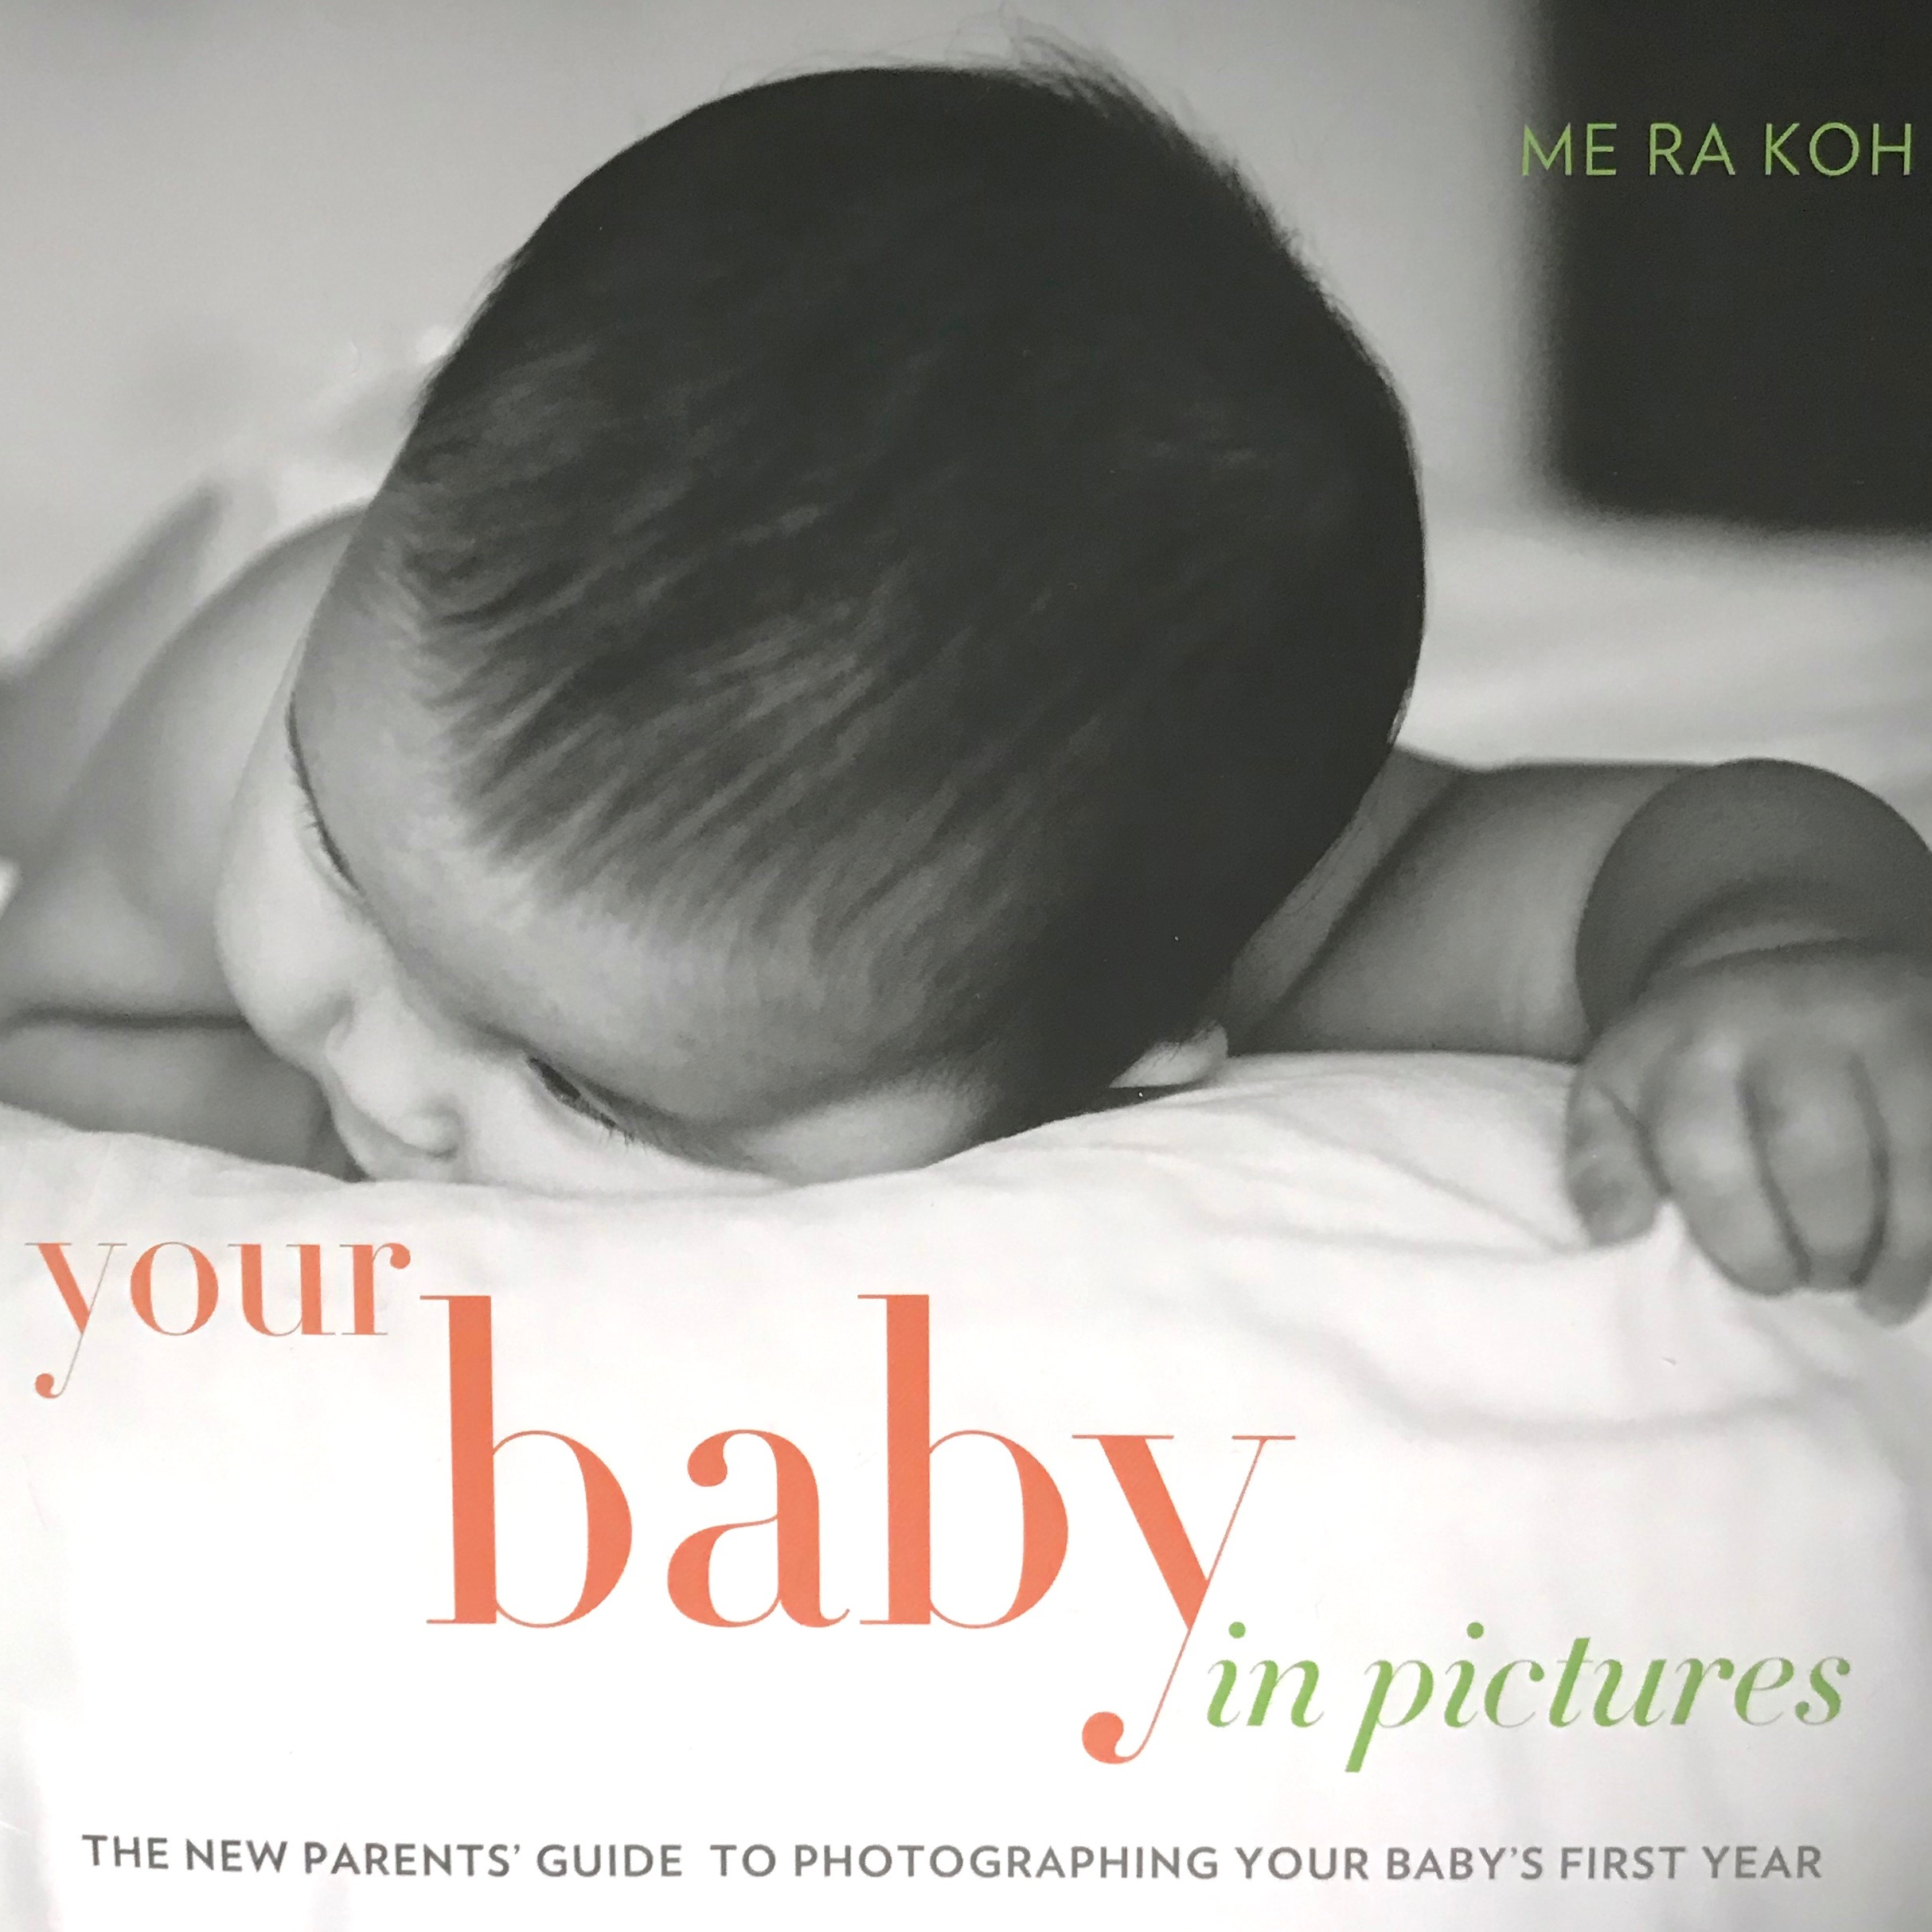 - This is the best gift we received! Find out why and see some of the pics I took of Bambino.